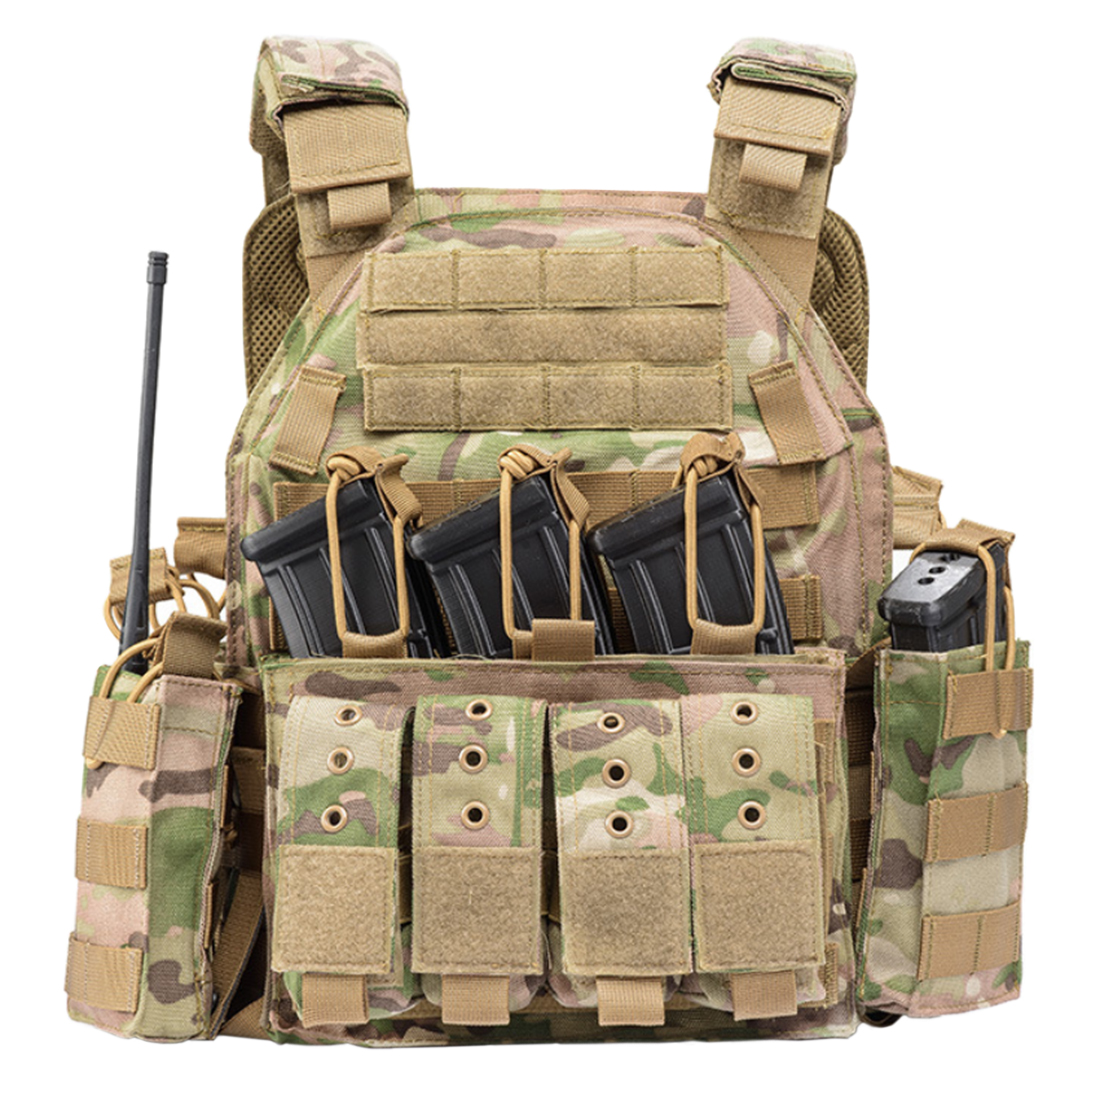 Outdoor Hunting Protective Adjustable  1000D Nylon Plate Carrier Vest For Men Airsoft Combat Accessories Security Tactical Vest